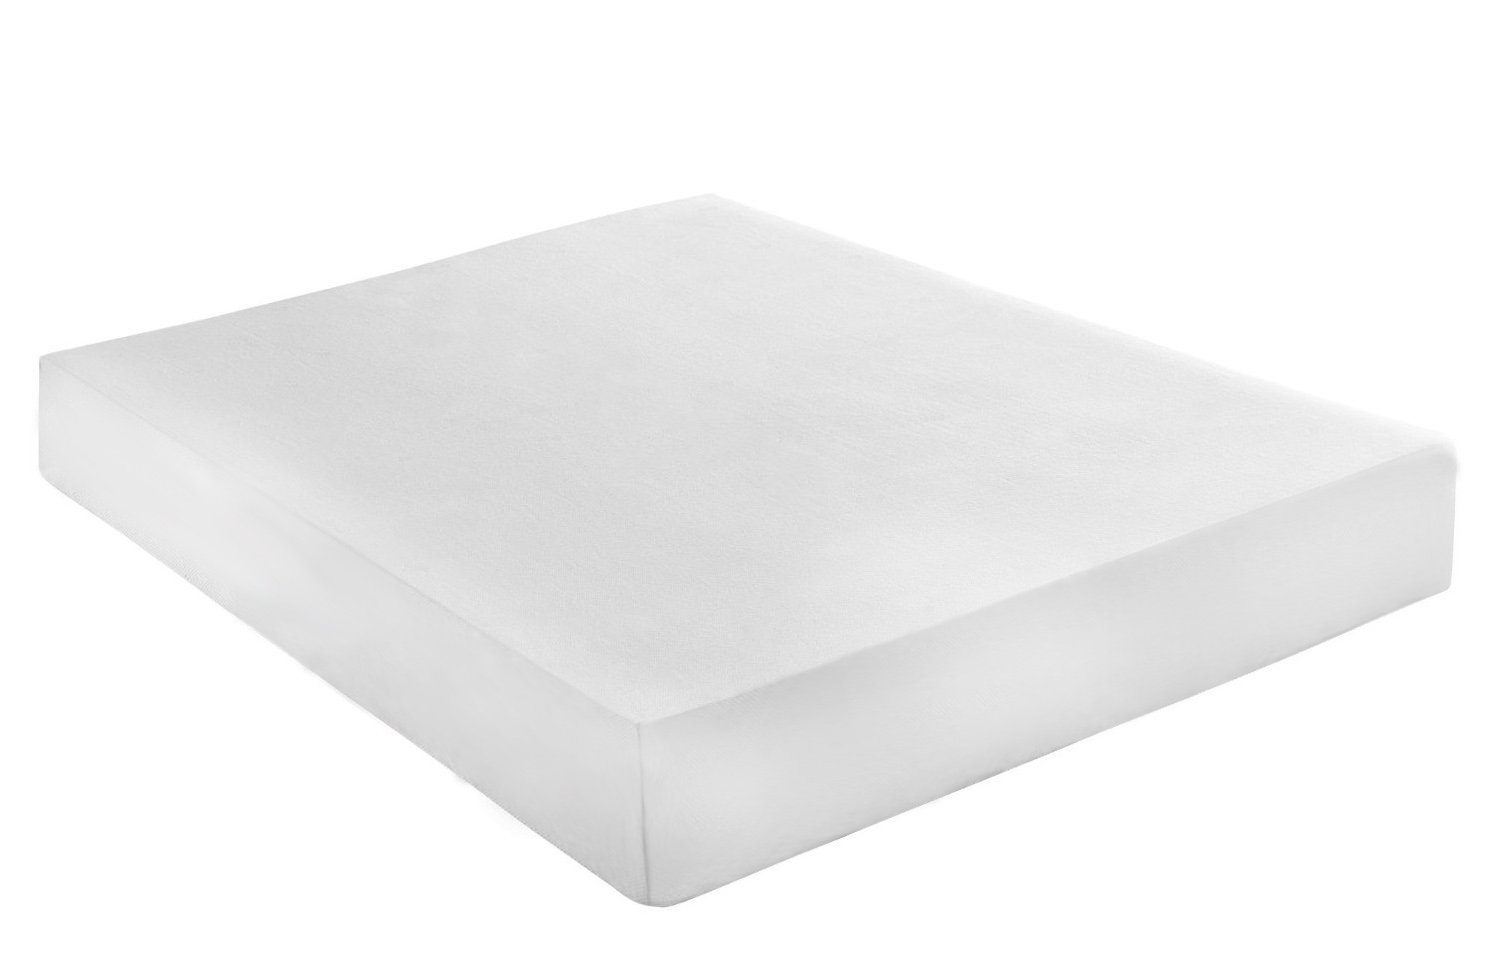 Swiss Ortho Sleep, 8'' High-Density, 3 x Layered MEMORY FOAM MATTRESS, w/ Bamboo Cover, All Sizes